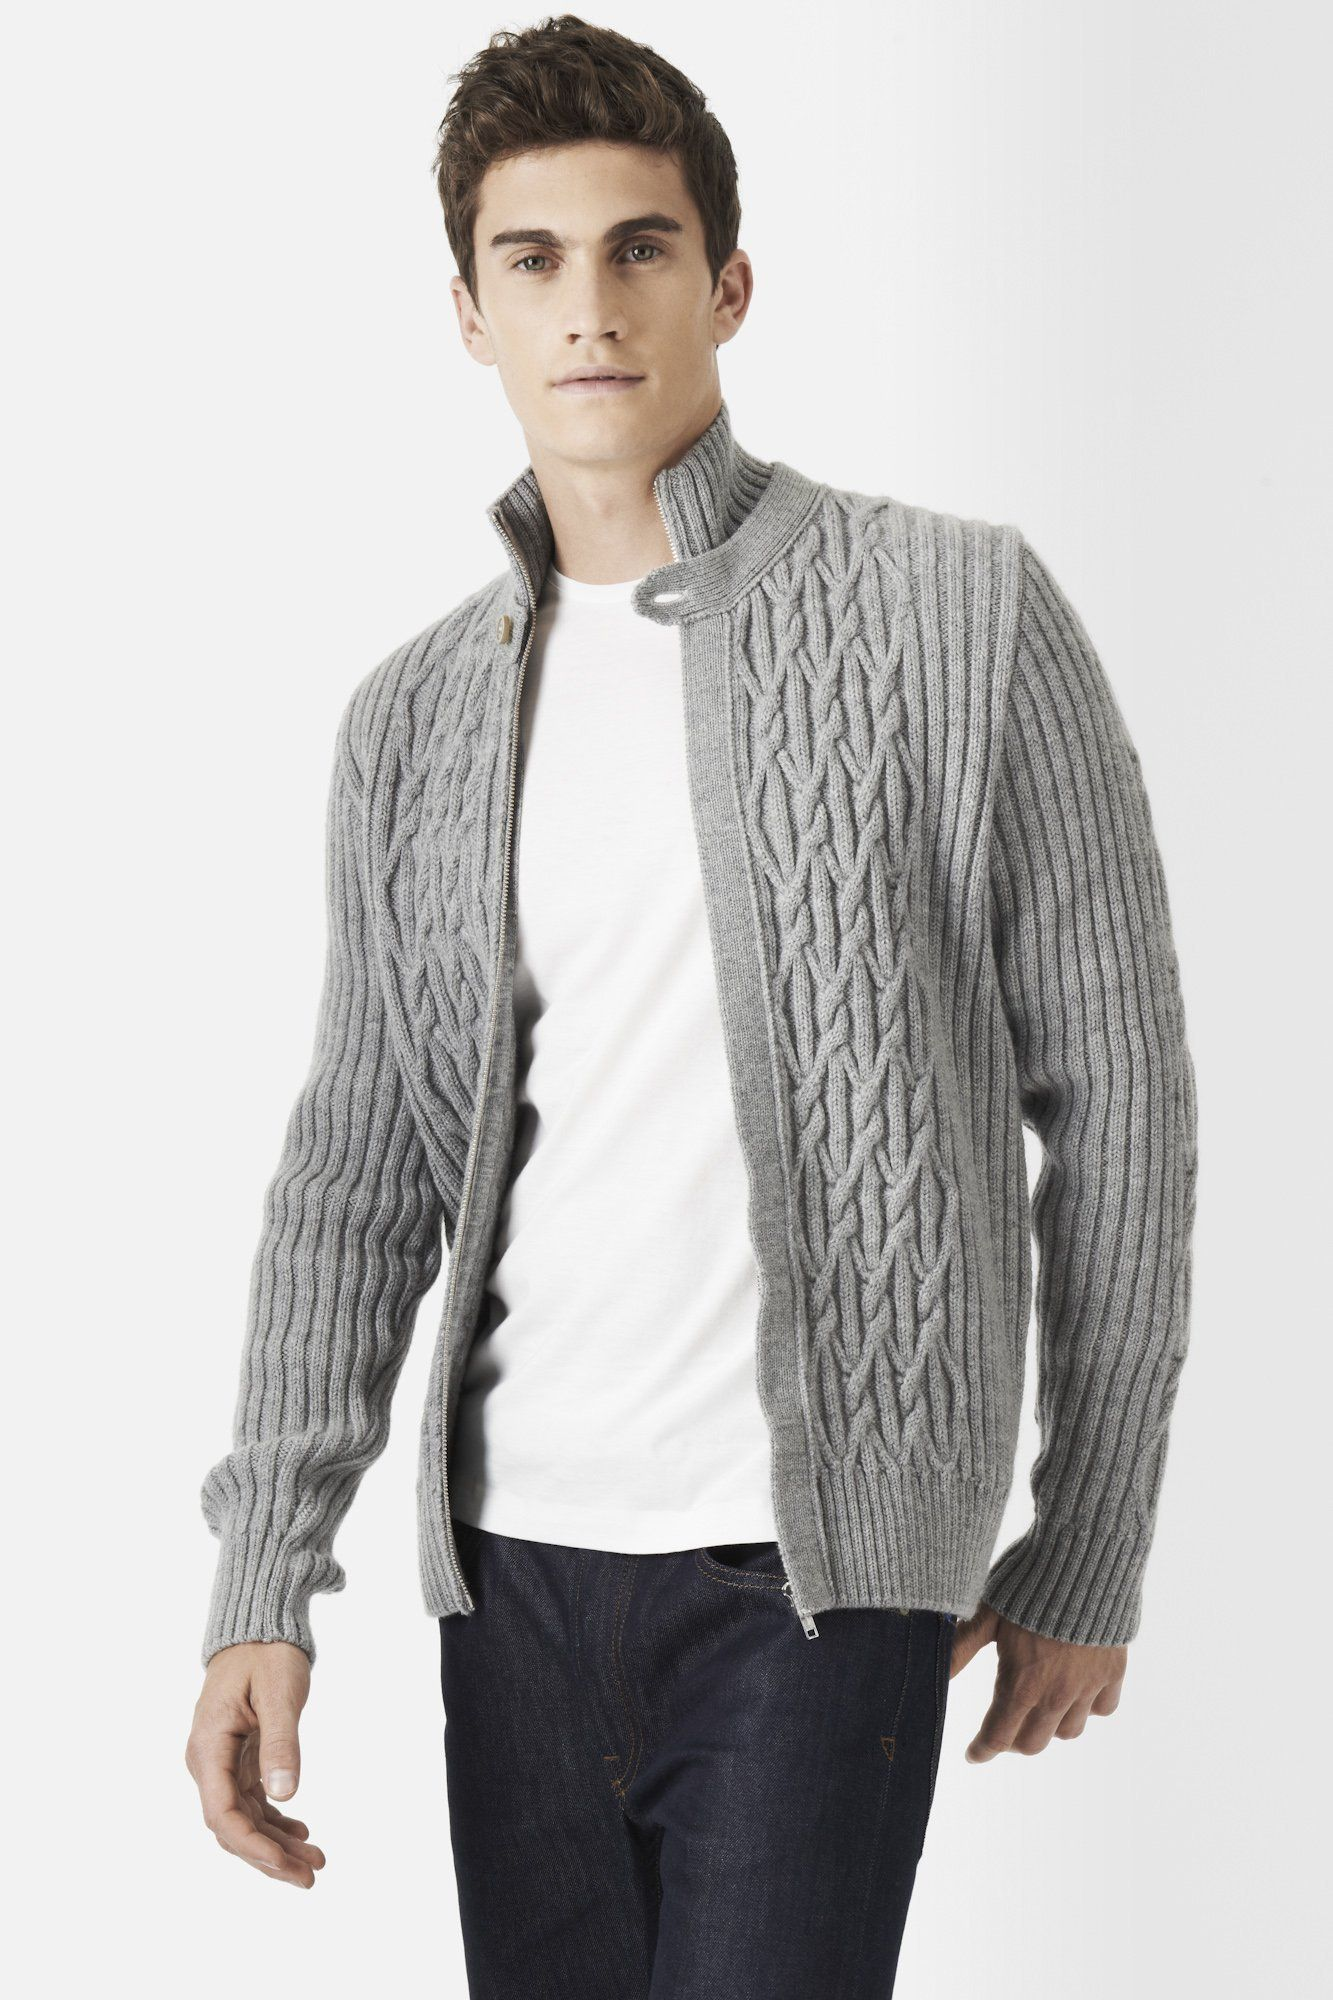 Lacoste Wool Cable Textured Full Zip Sweater : Sweaters | Lacoste ...